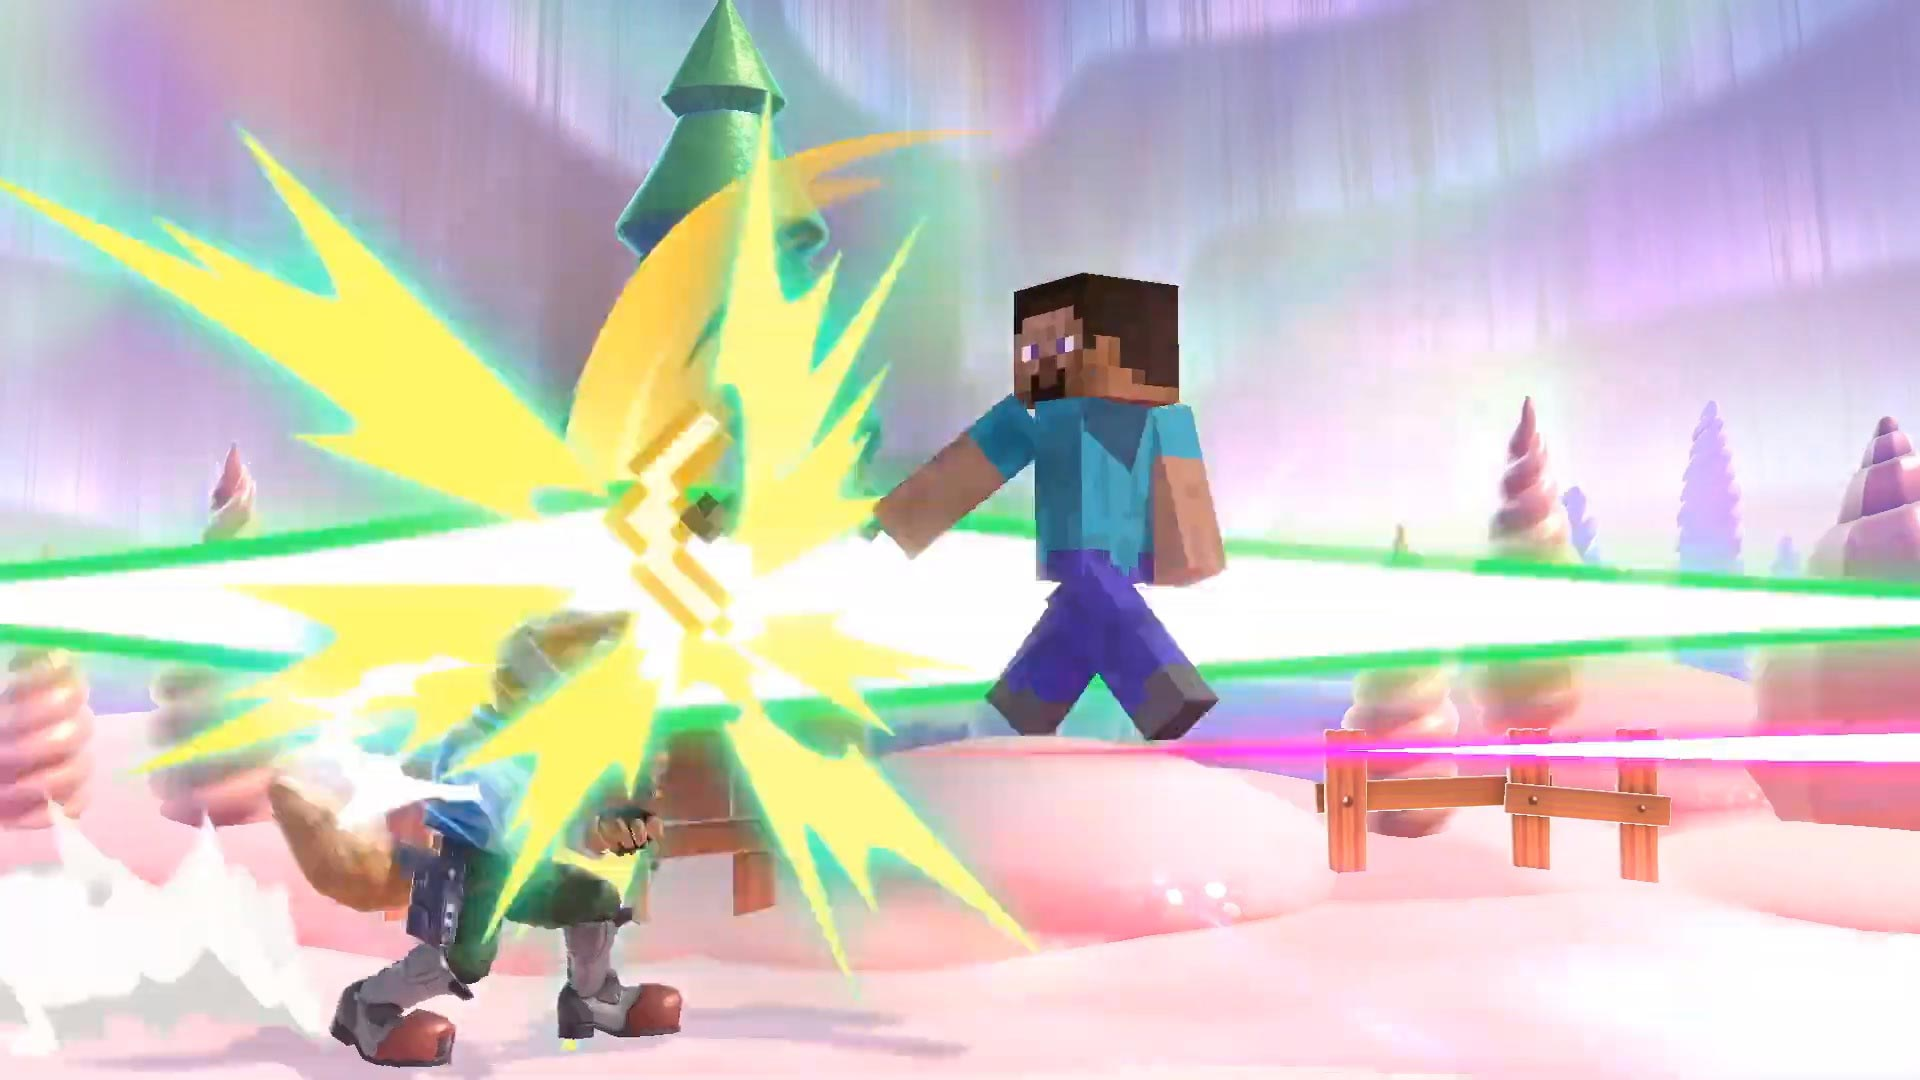 Steve from Minecraft in Super Smash Bros. Ultimate 7 out of 9 image gallery